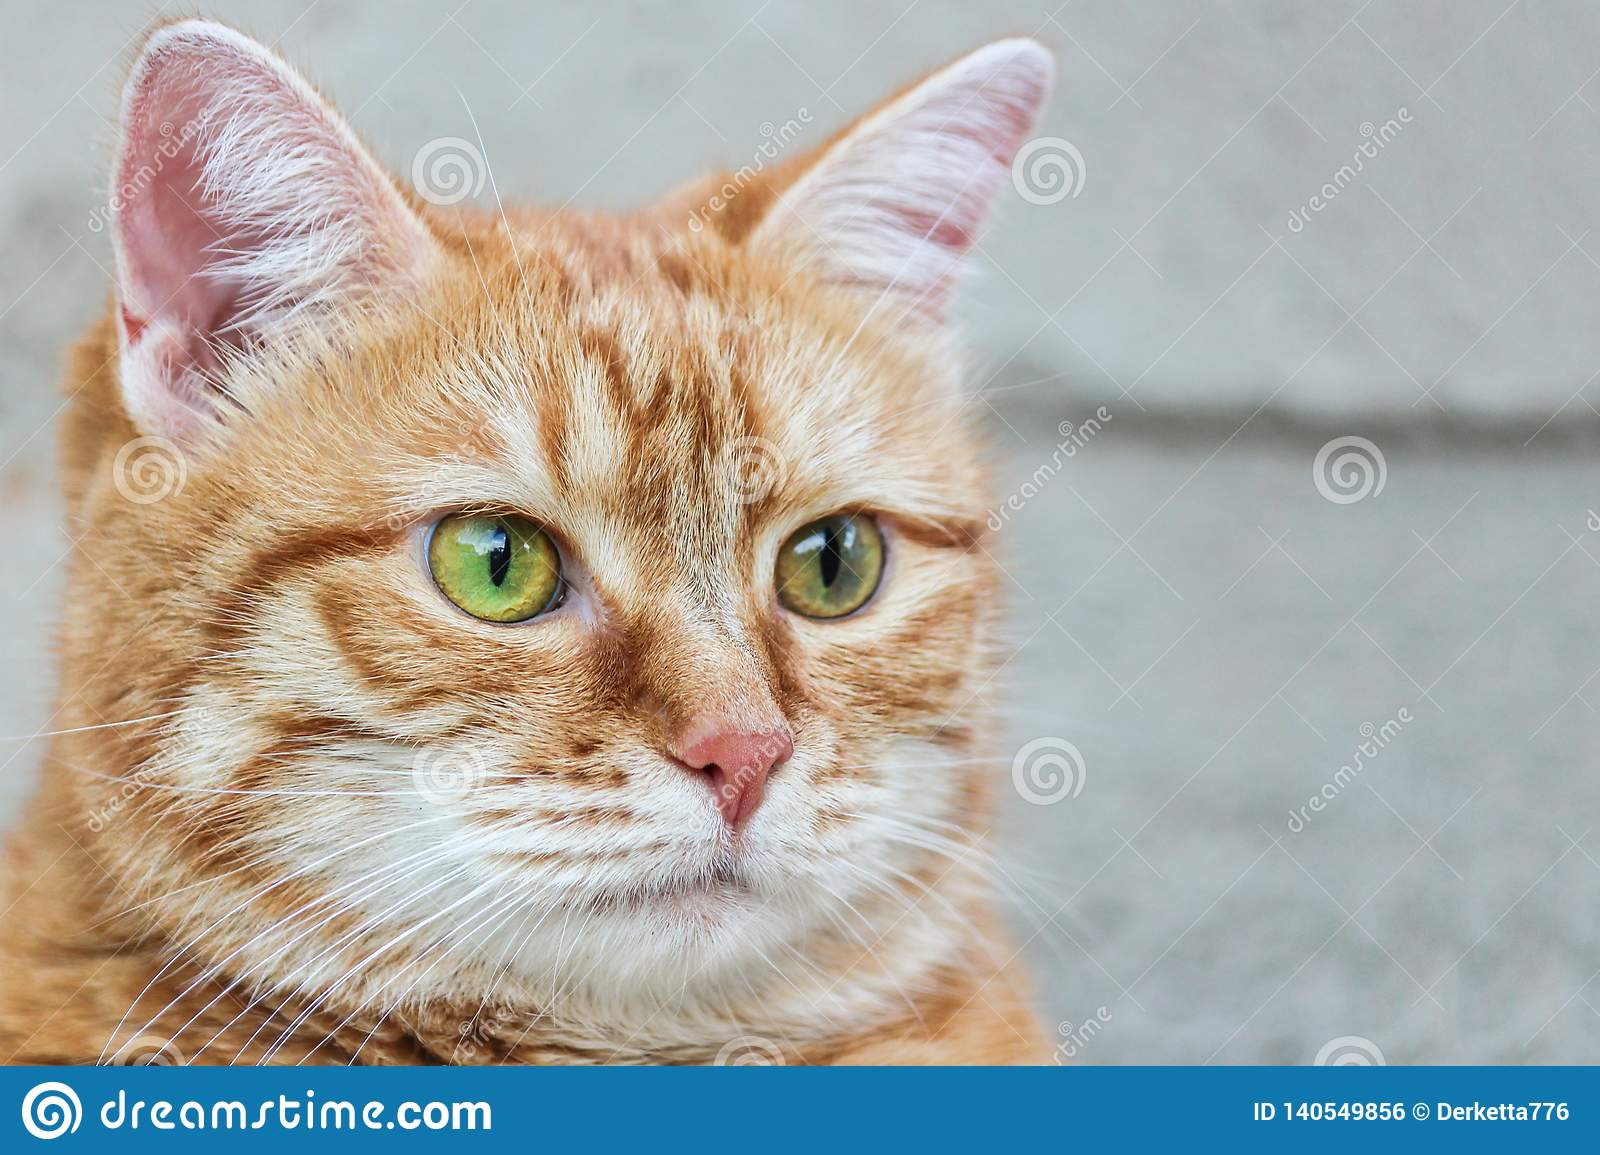 Muzzle red cat with watchful green eyes staring. Close up. Selective focus